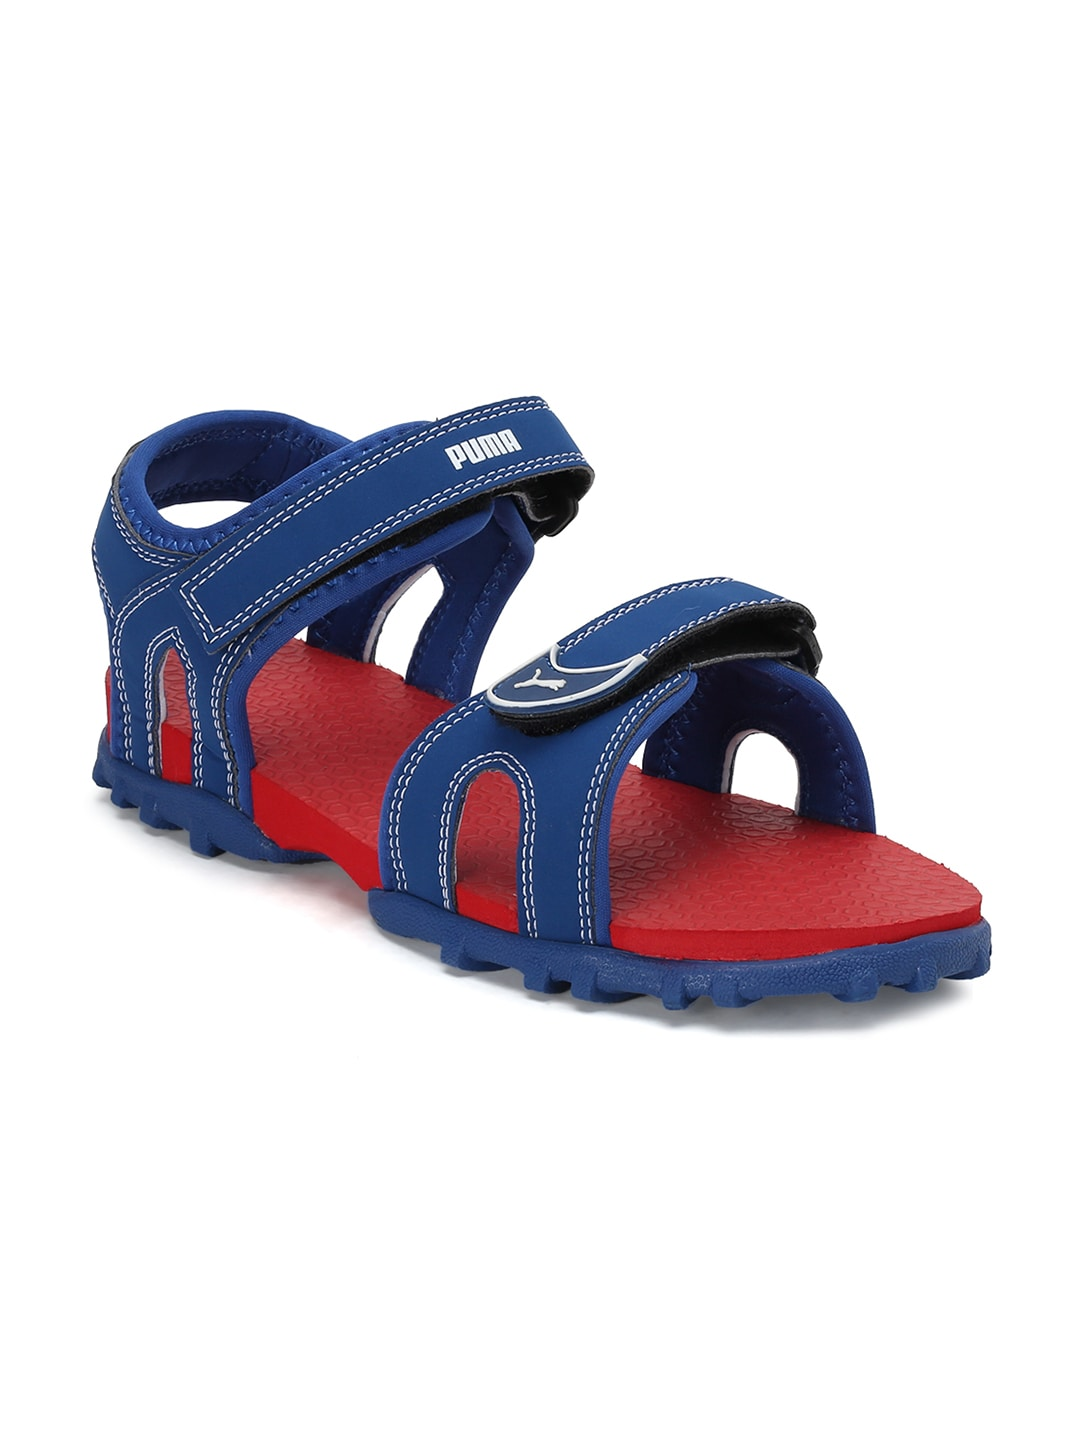 Puma Kids Blue Track Jr DP Sports for girls in India - Buy at Lowest ... 8a48107f7